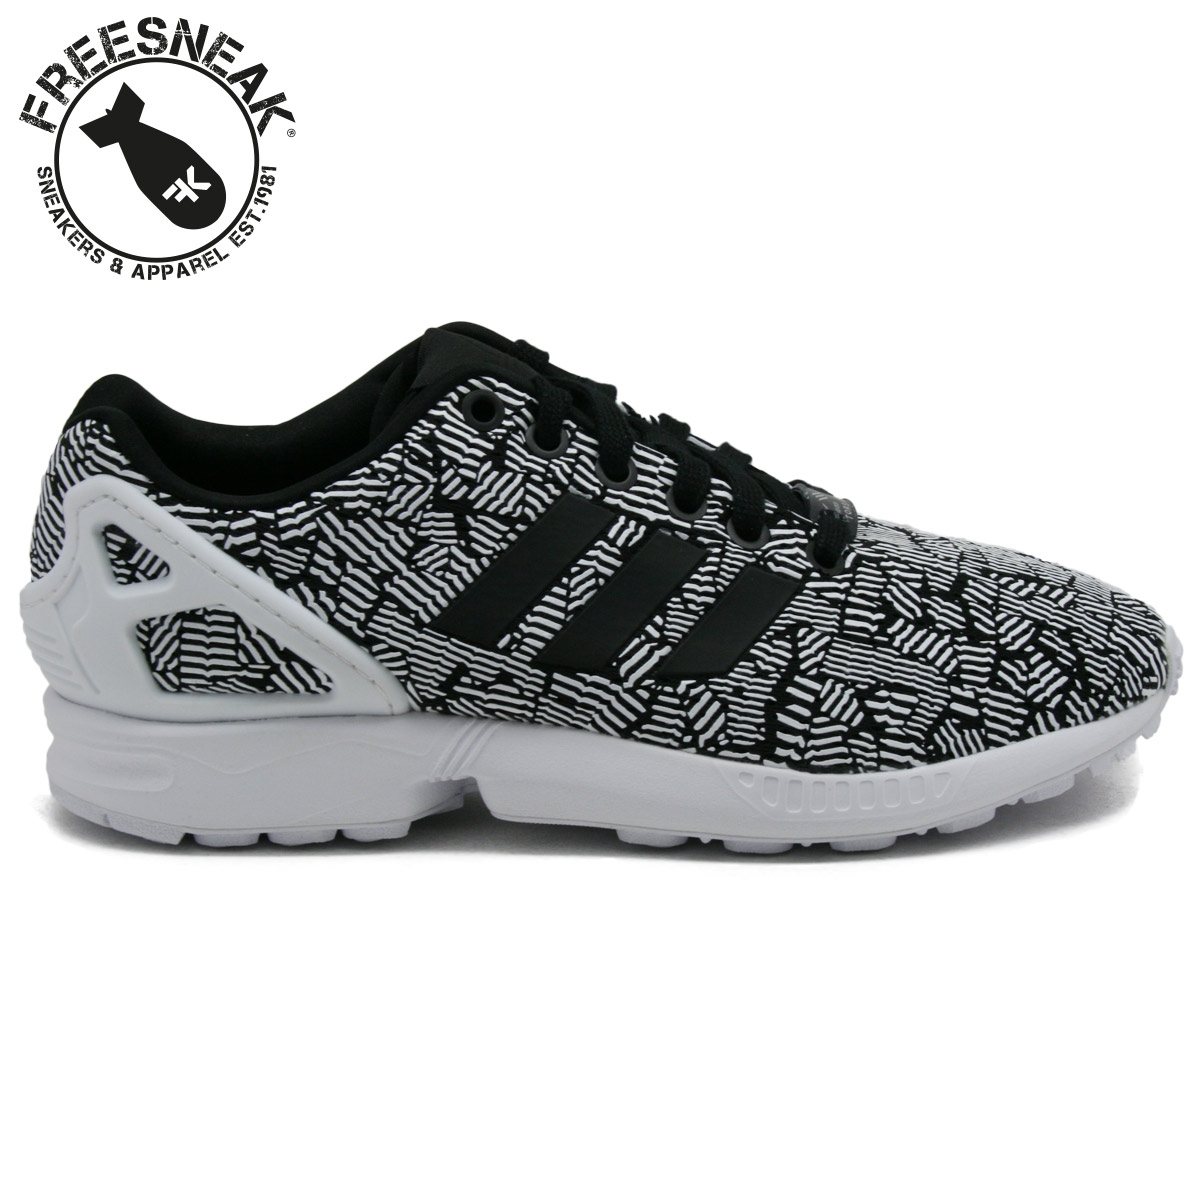 reputable site d80eb 6bae2 Adidas Zx Flux Bianco